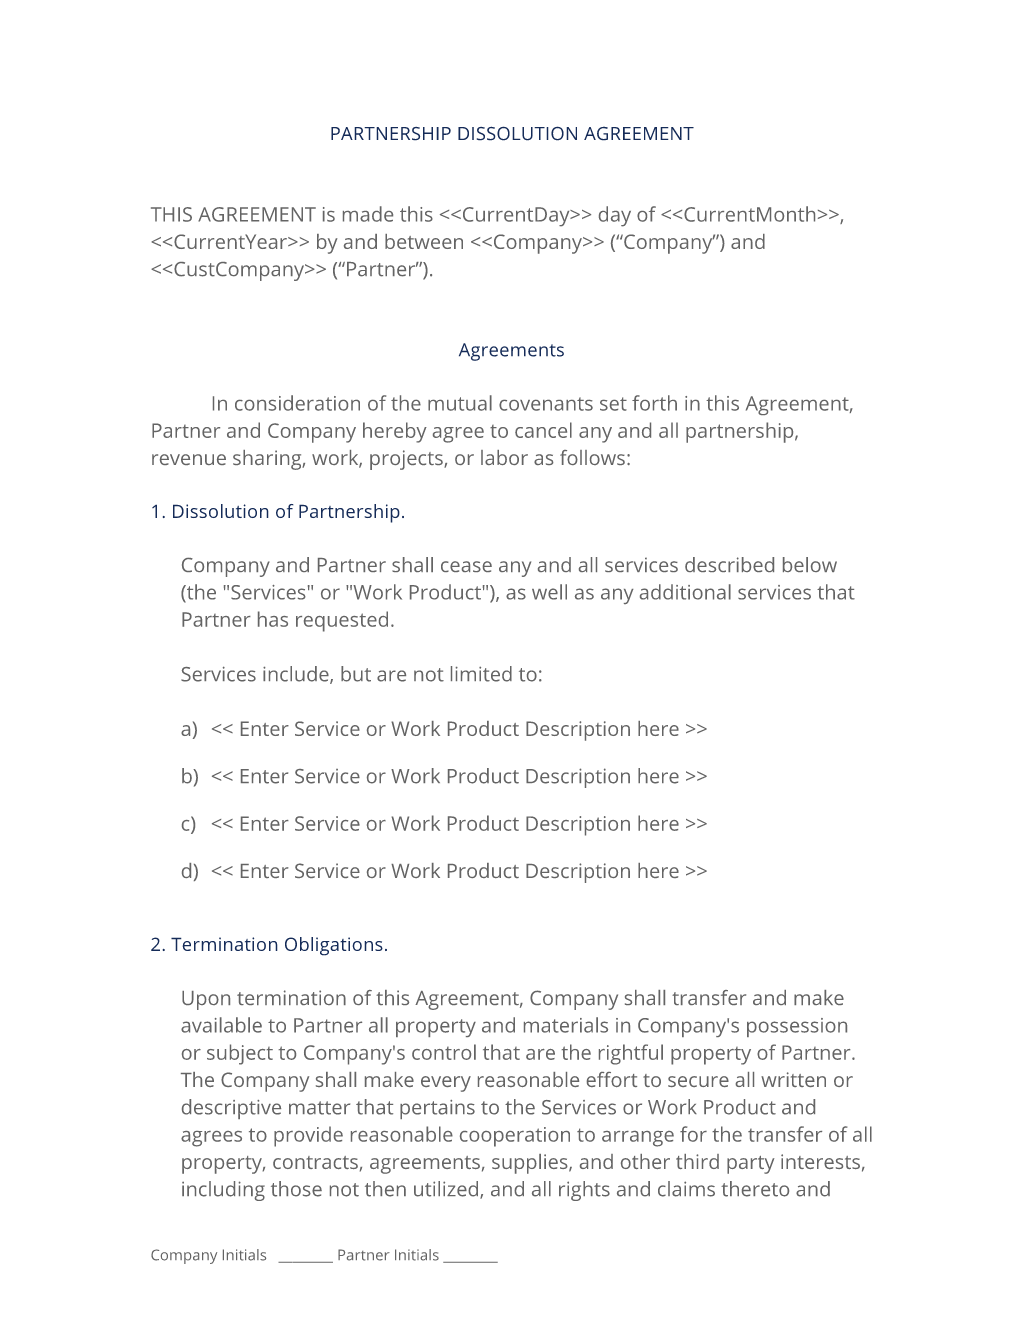 Partnership Dissolution Agreement 3 Easy Steps